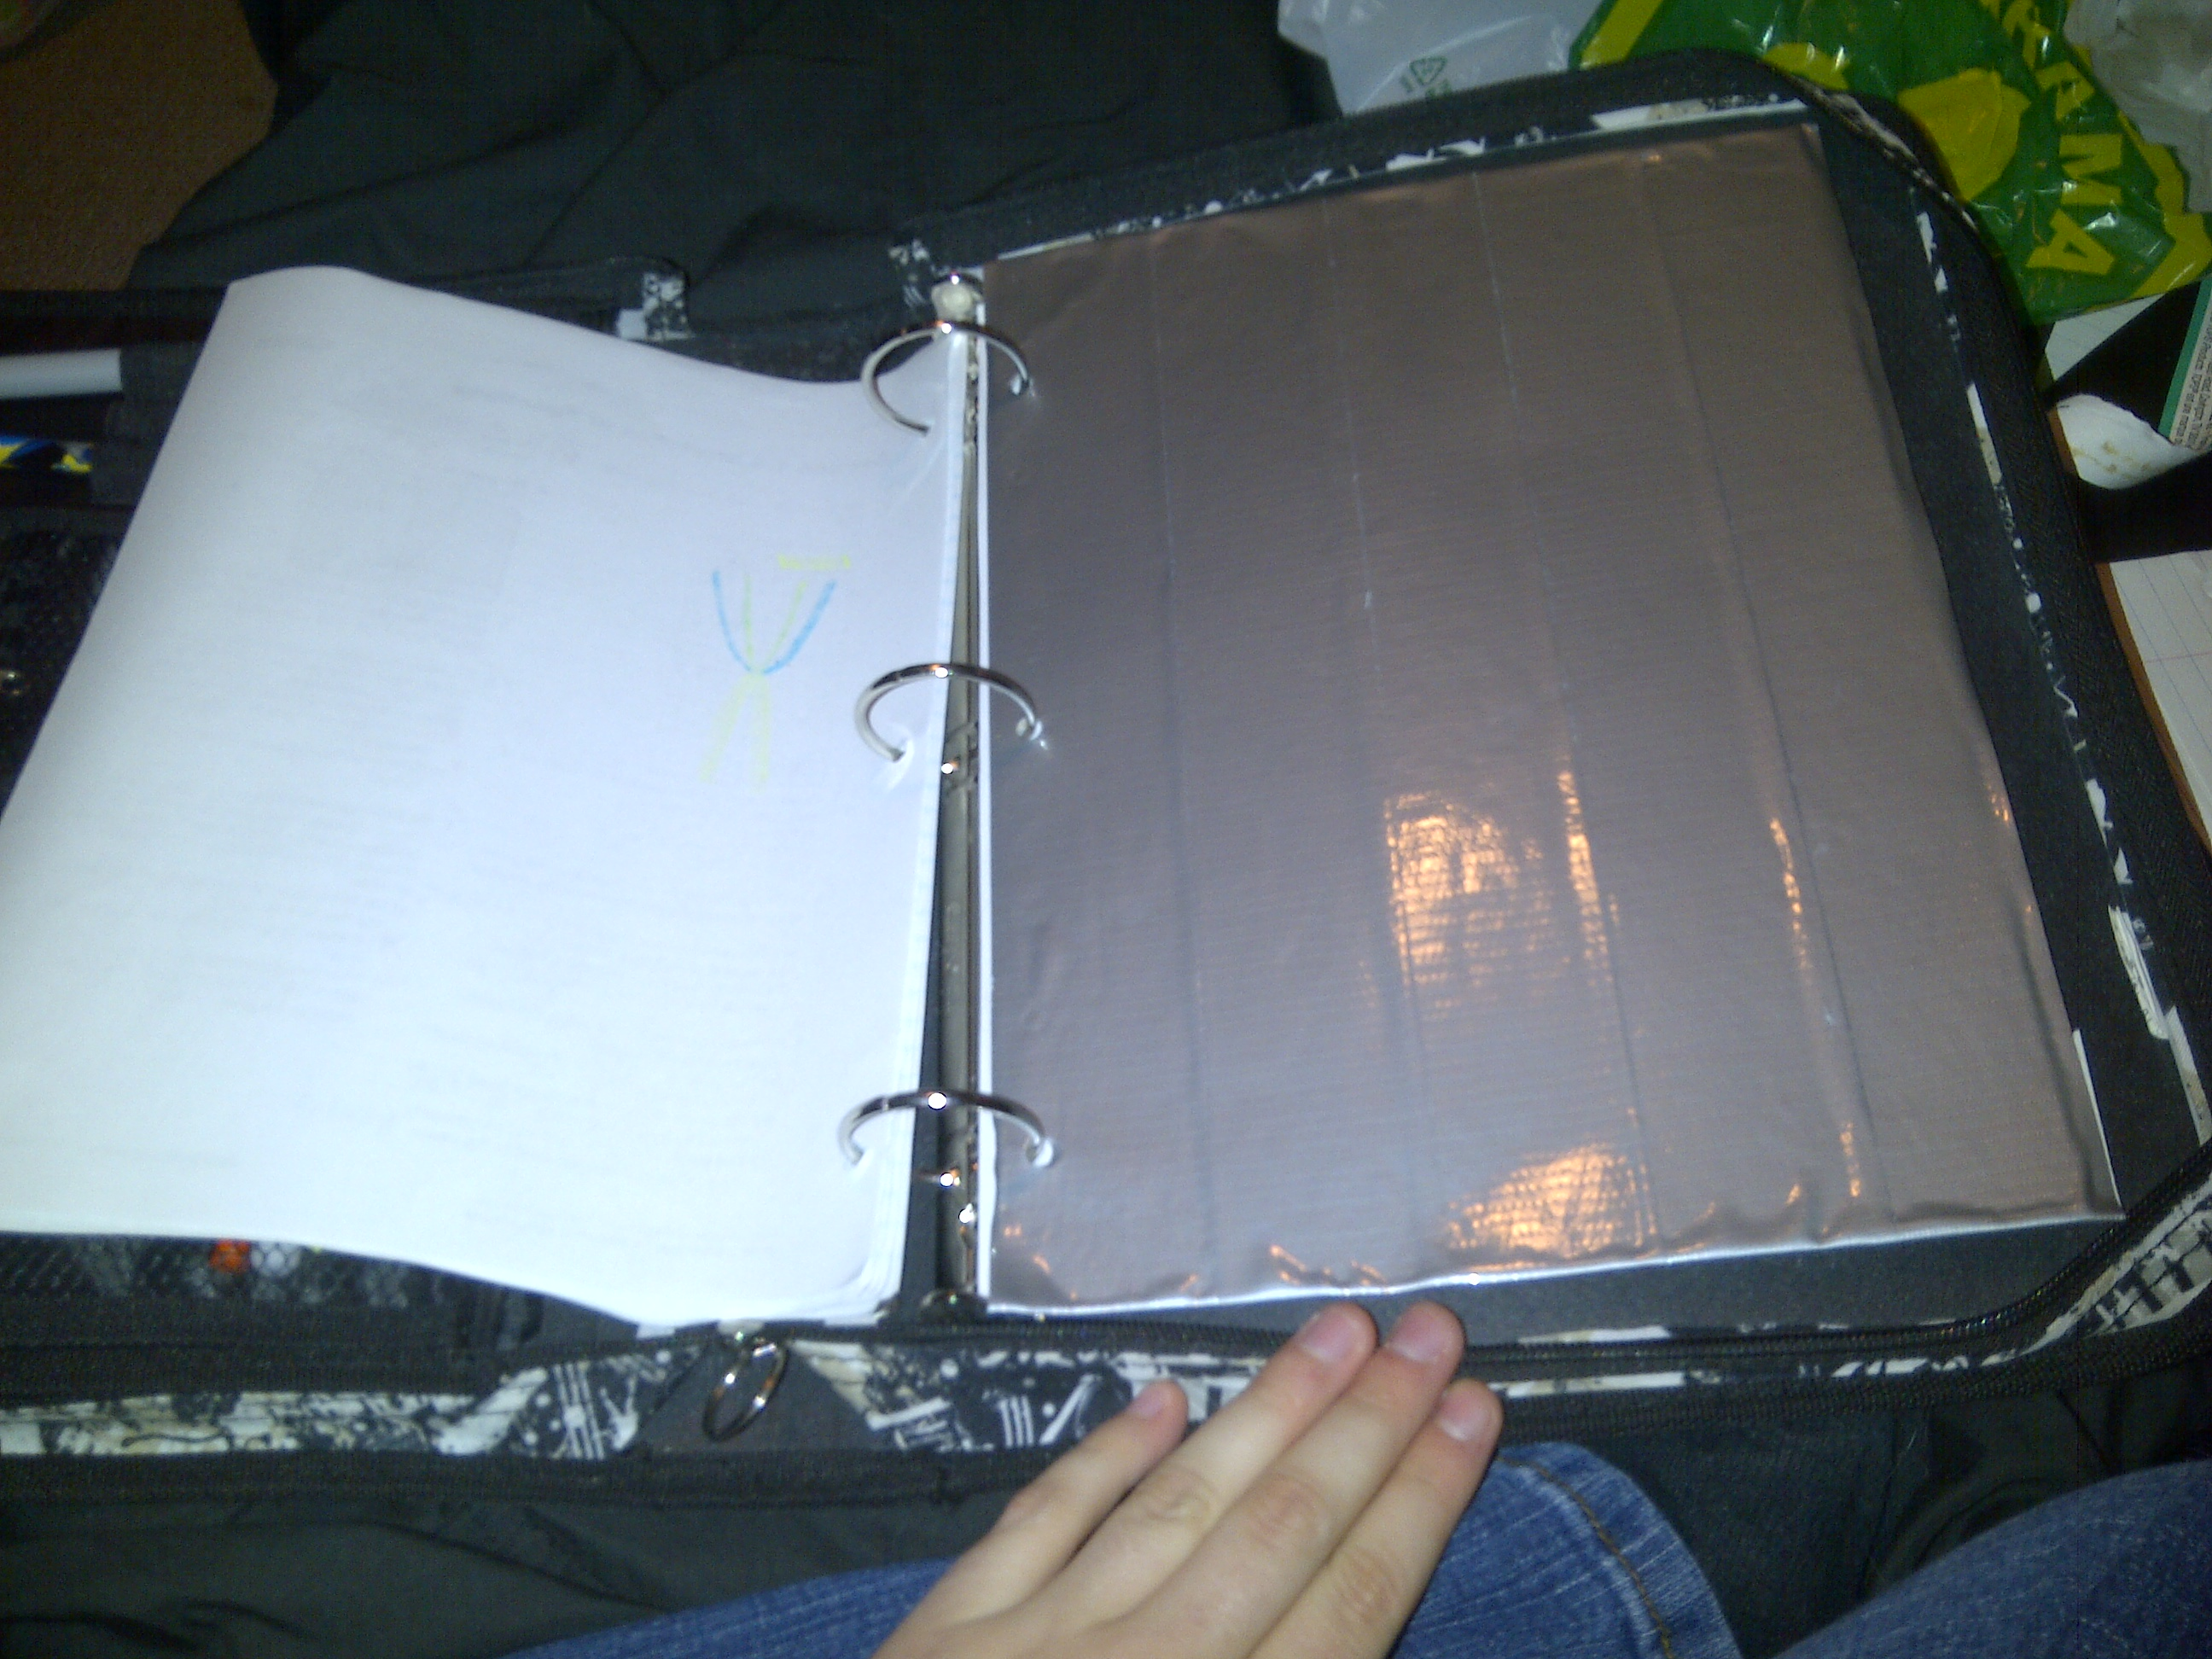 Cardboard and Duct Tape Dividers for School